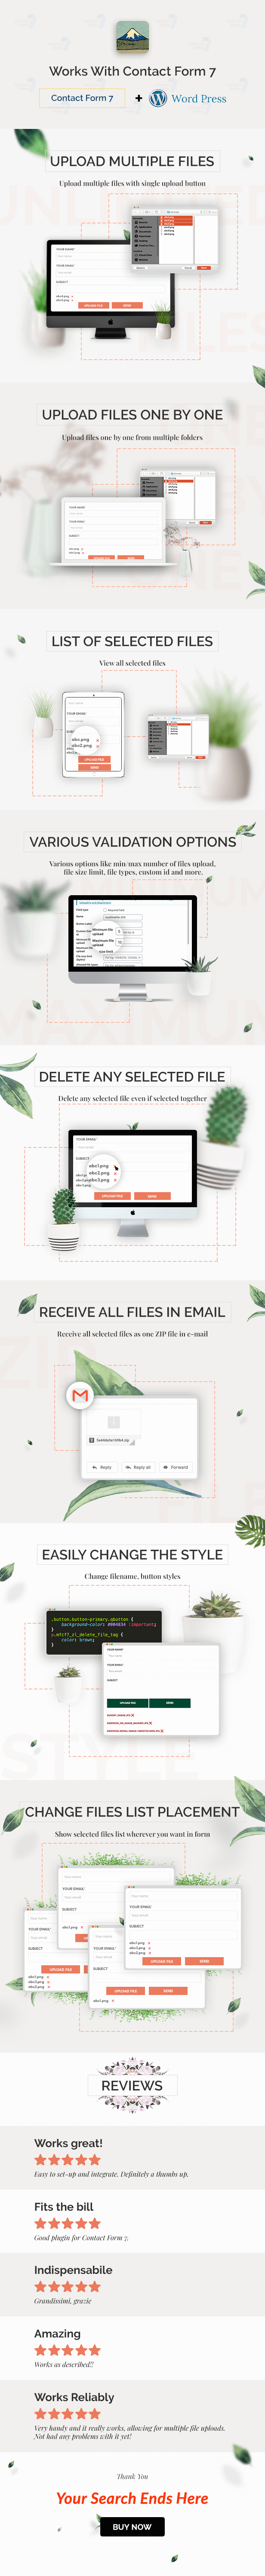 Multiline files upload plugin for contact form 7